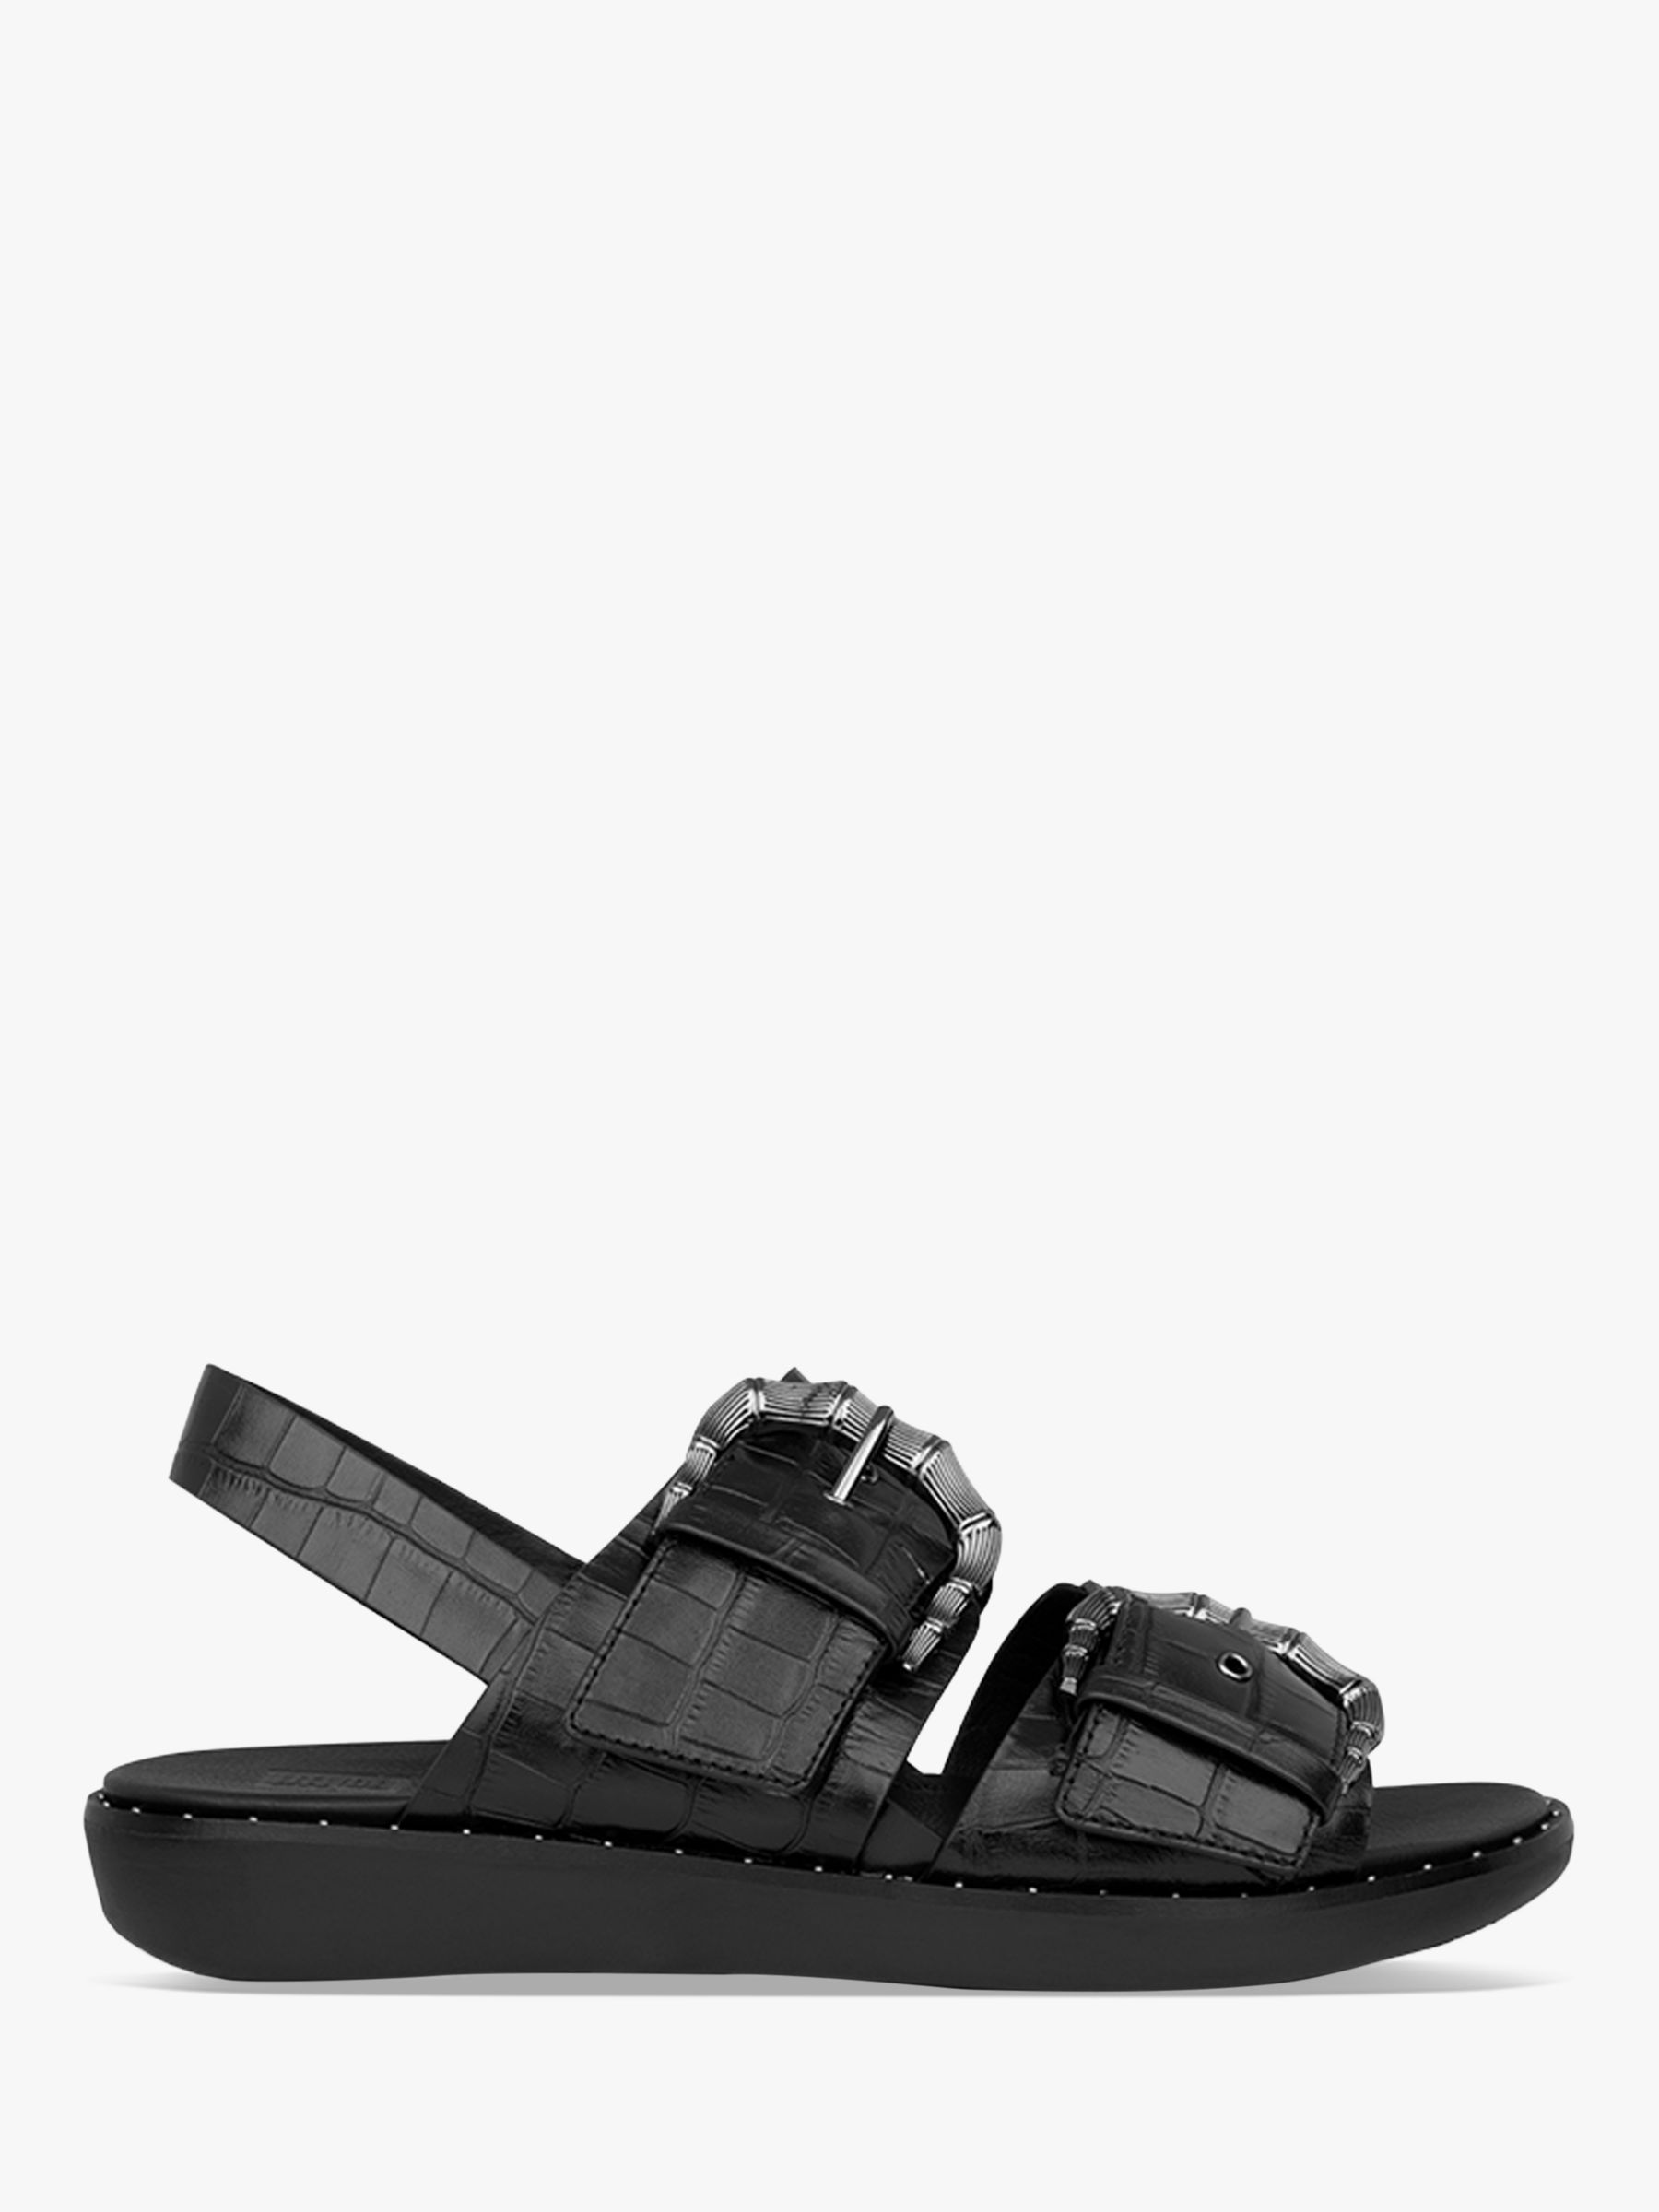 Fitflop FitFlop Kaia Croc Print Leather Slides